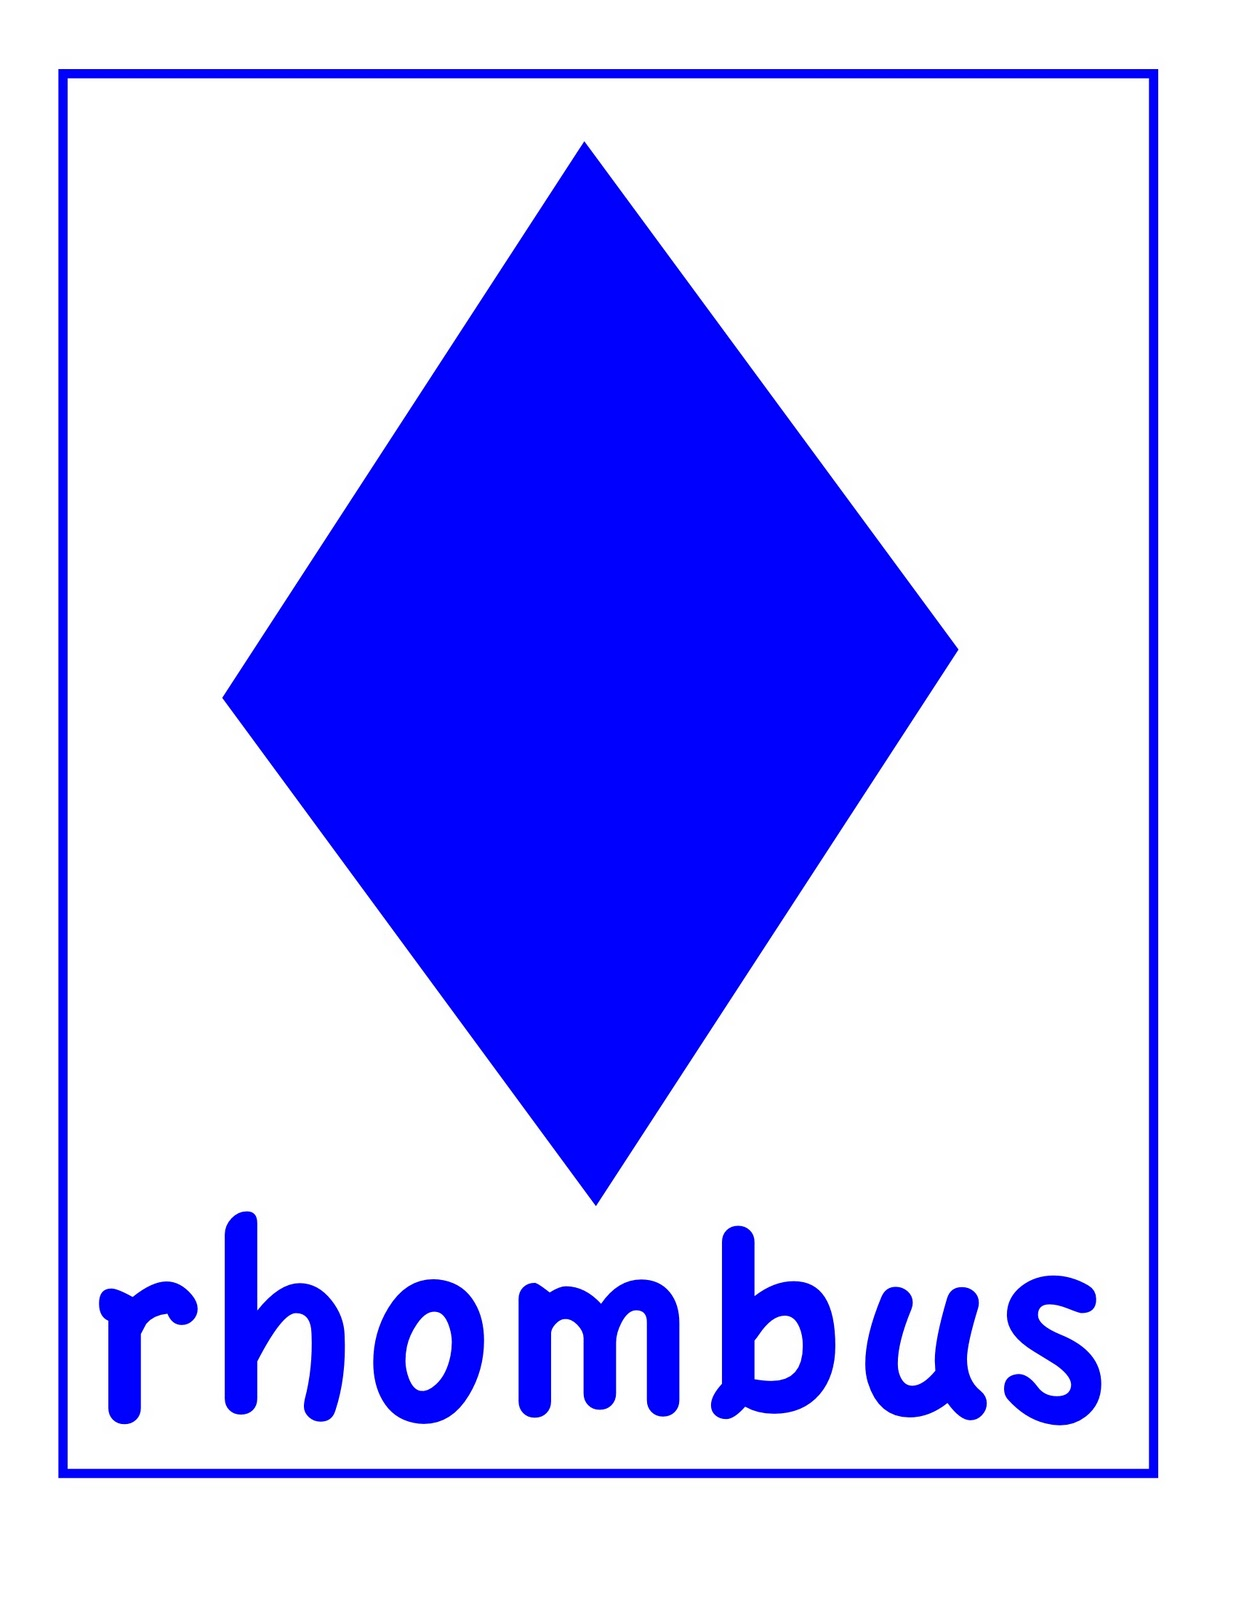 Preschool shapes rhombus : Rhombus Shape Printable for Preschool